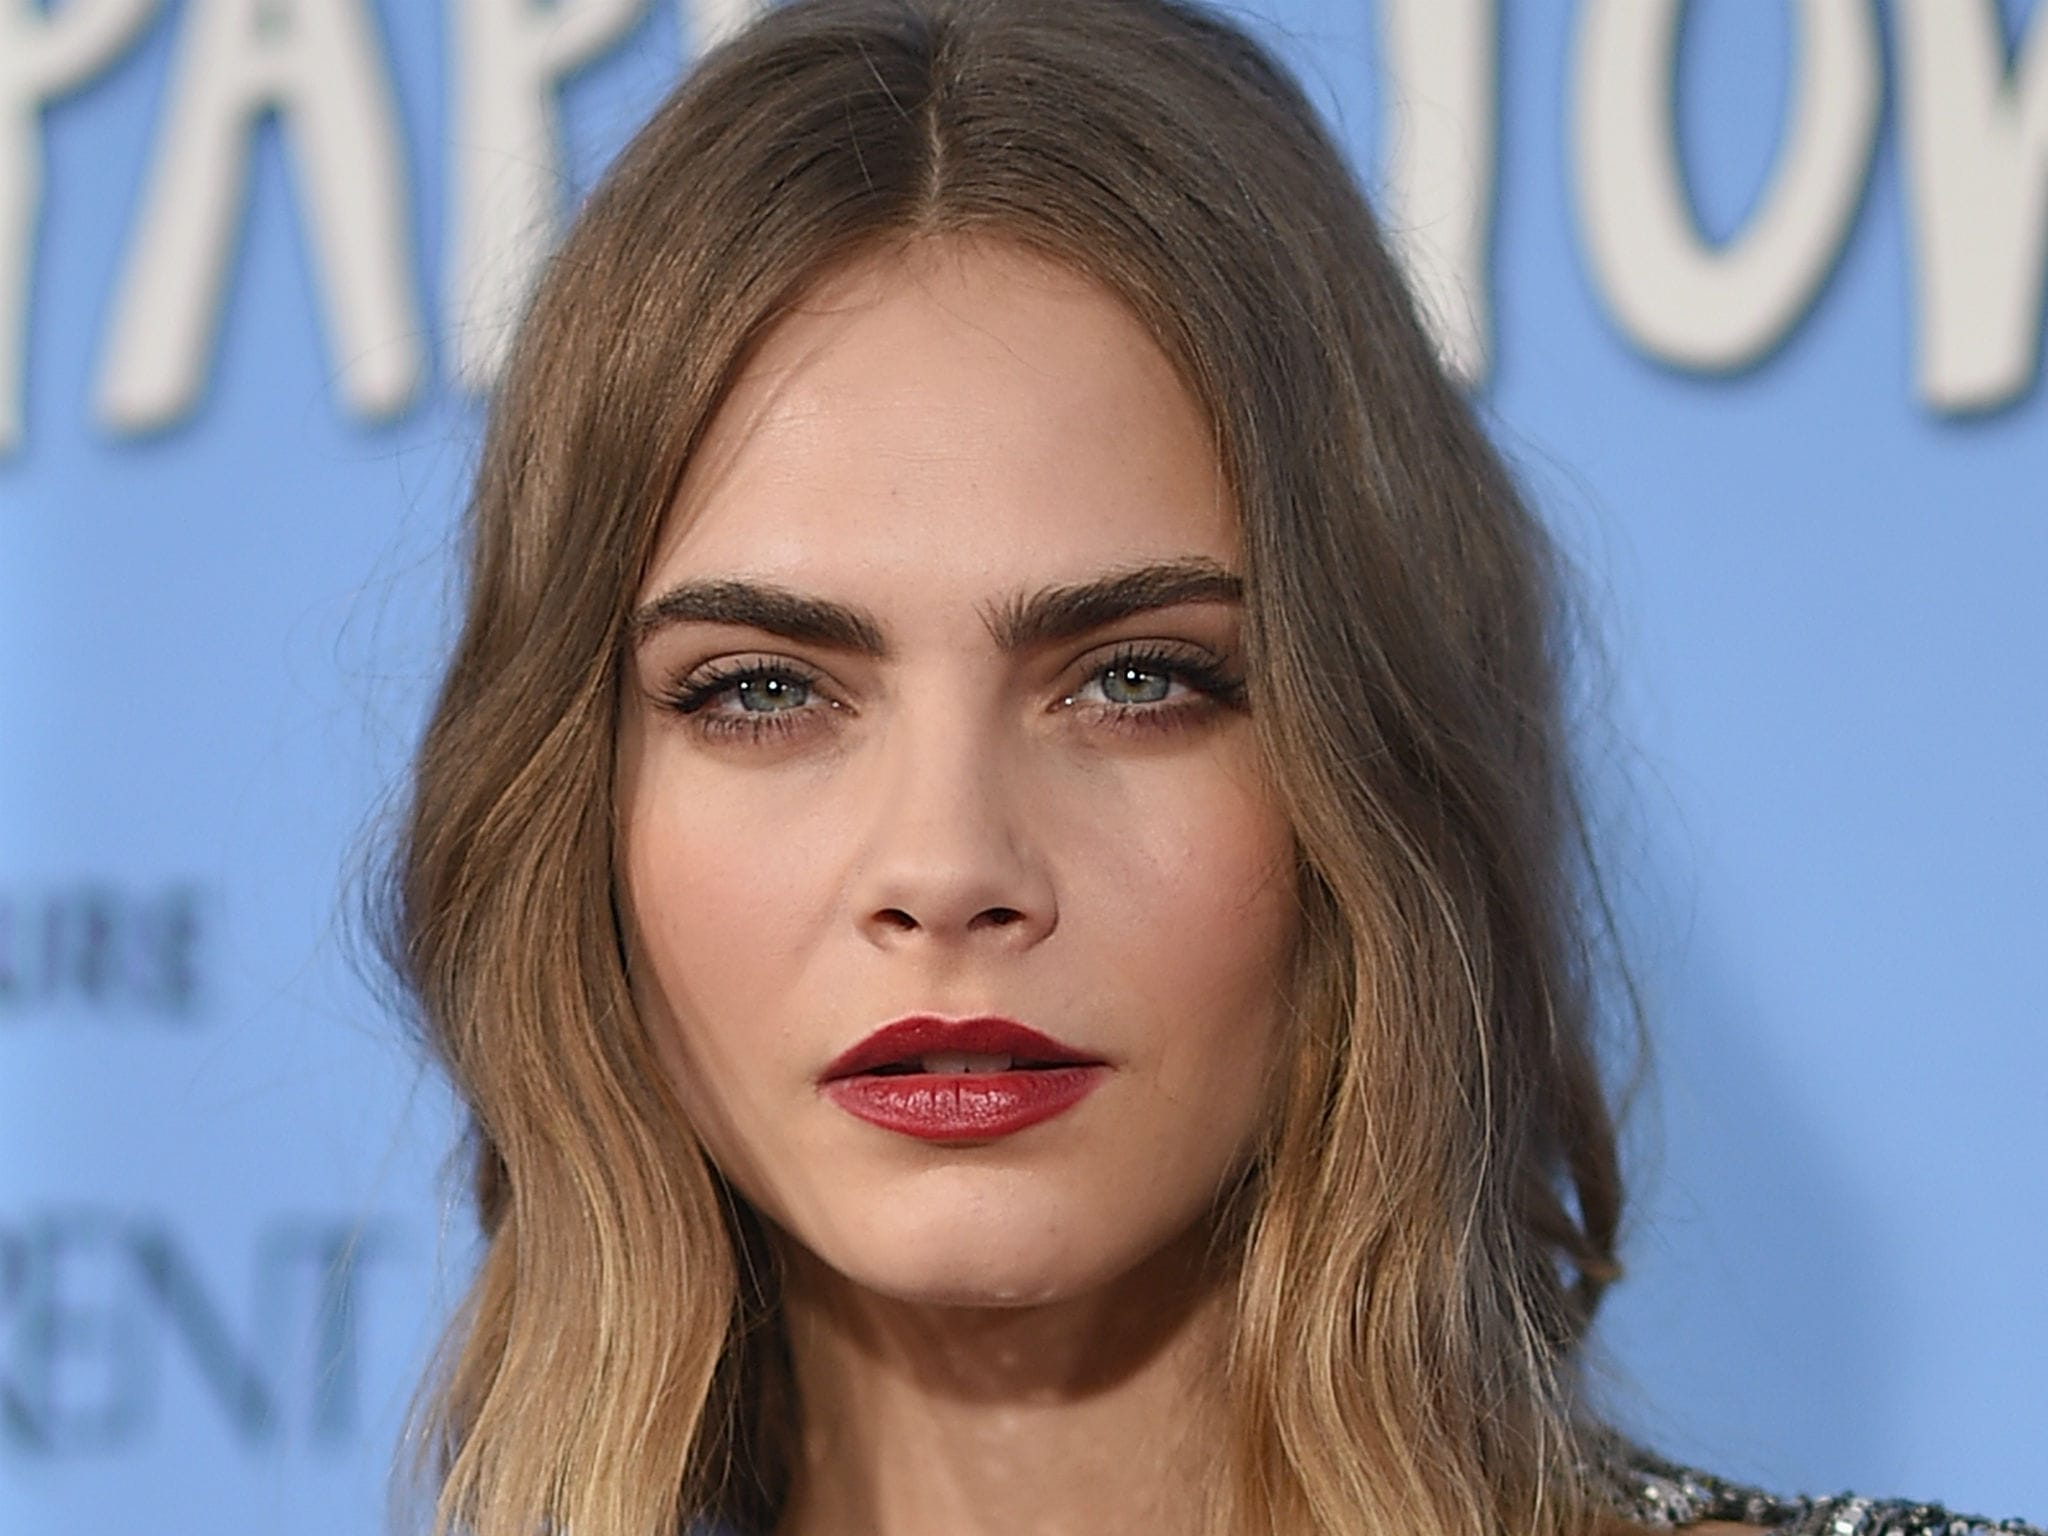 Cara Delevingne Wallpapers